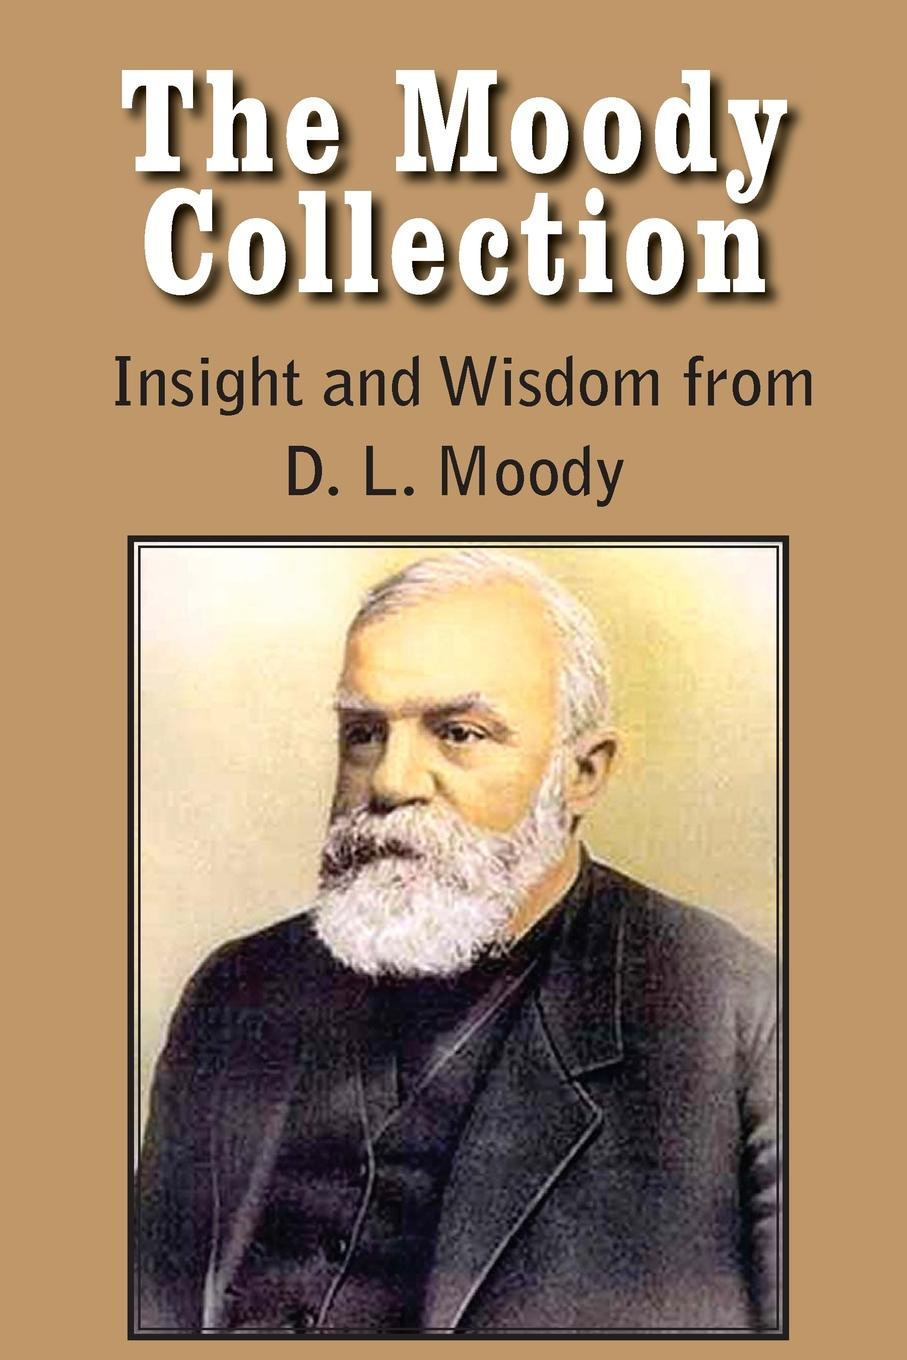 Dwight Lyman Moody The Moody Collection, Insight and Wisdom from D. L. Moody - That Gospel Sermon on the Blessed Hope, Sovereign Grace, Sowing and Reaping, the Way to Go judy moody the doctor is in